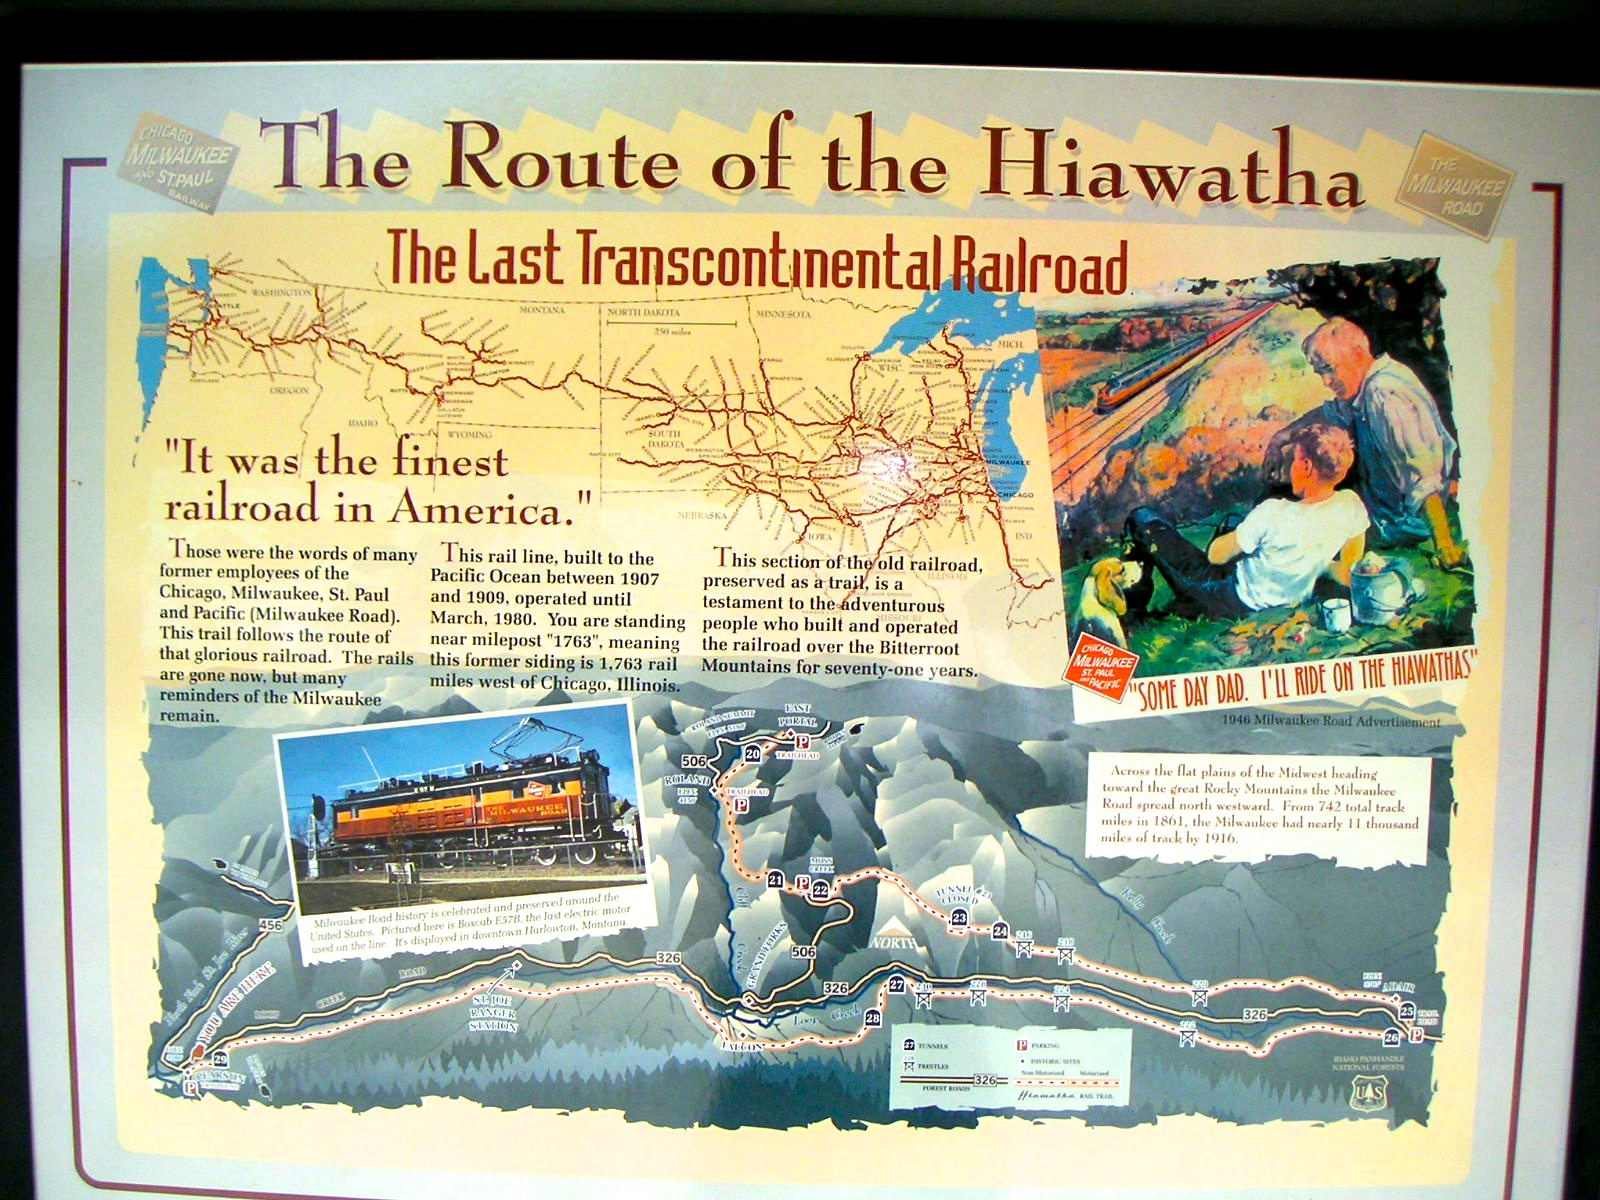 chuck s adventures biking idaho s hiawatha trail the hiawatha originated henry wadsworth longfellow s epic 1855 poem song of hiawatha the milwaukee road railroad chose that because of